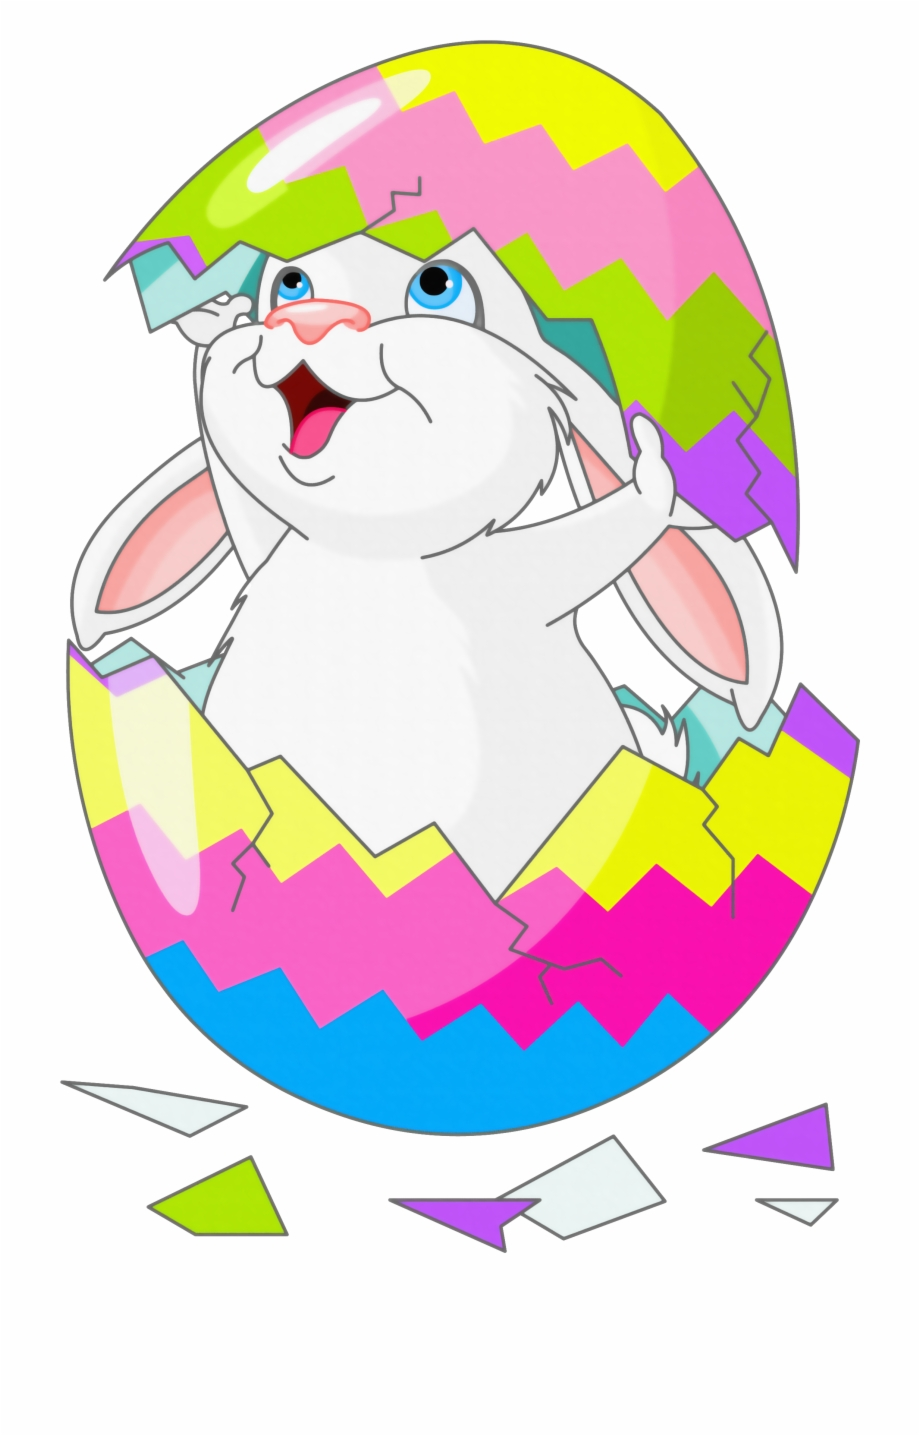 With Egg Easter Bunny Picture Free Hq Image Clipart.